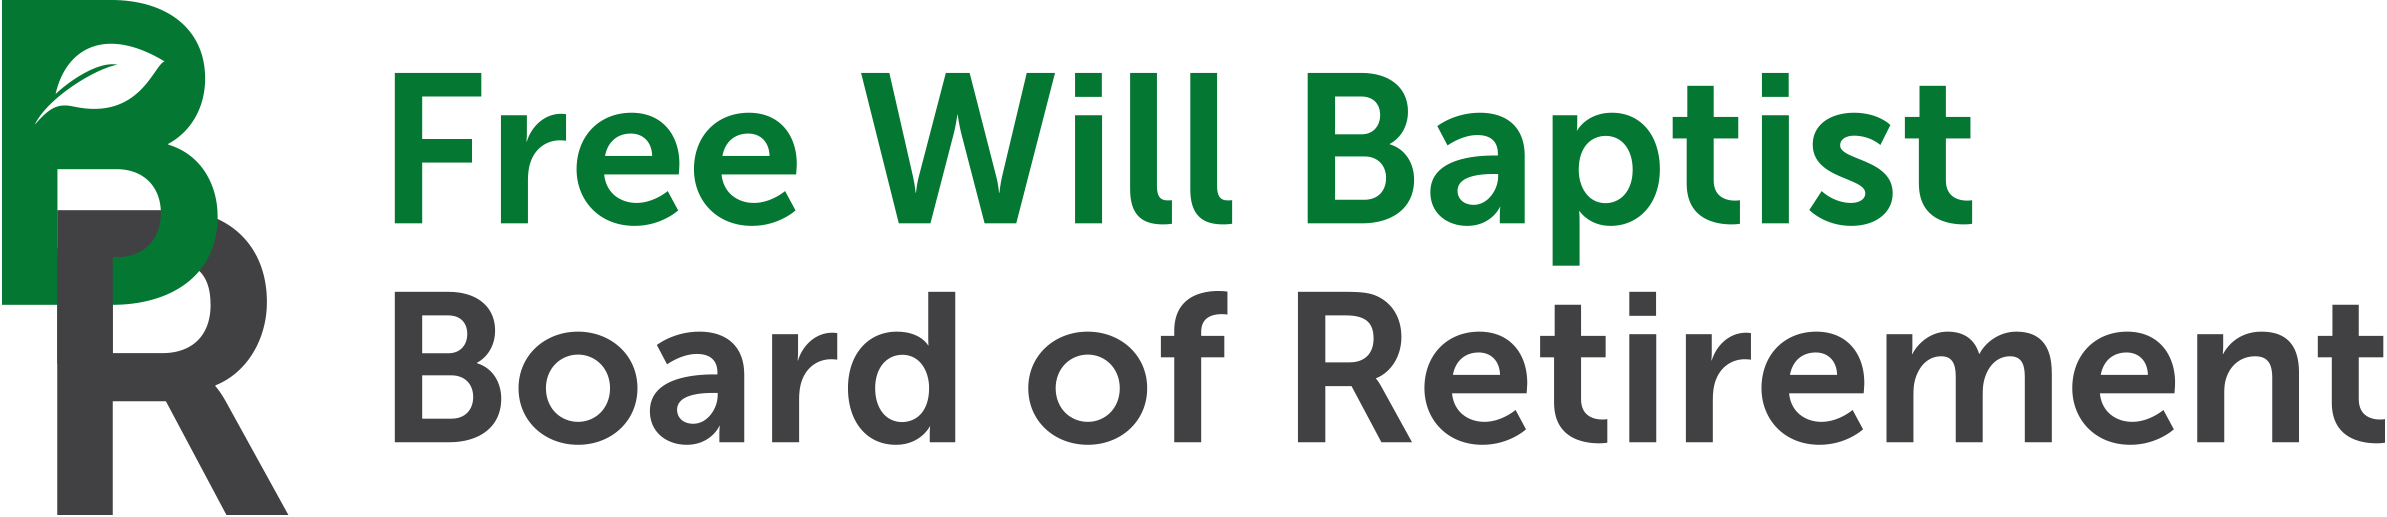 Free Will Baptist Board of Retirement